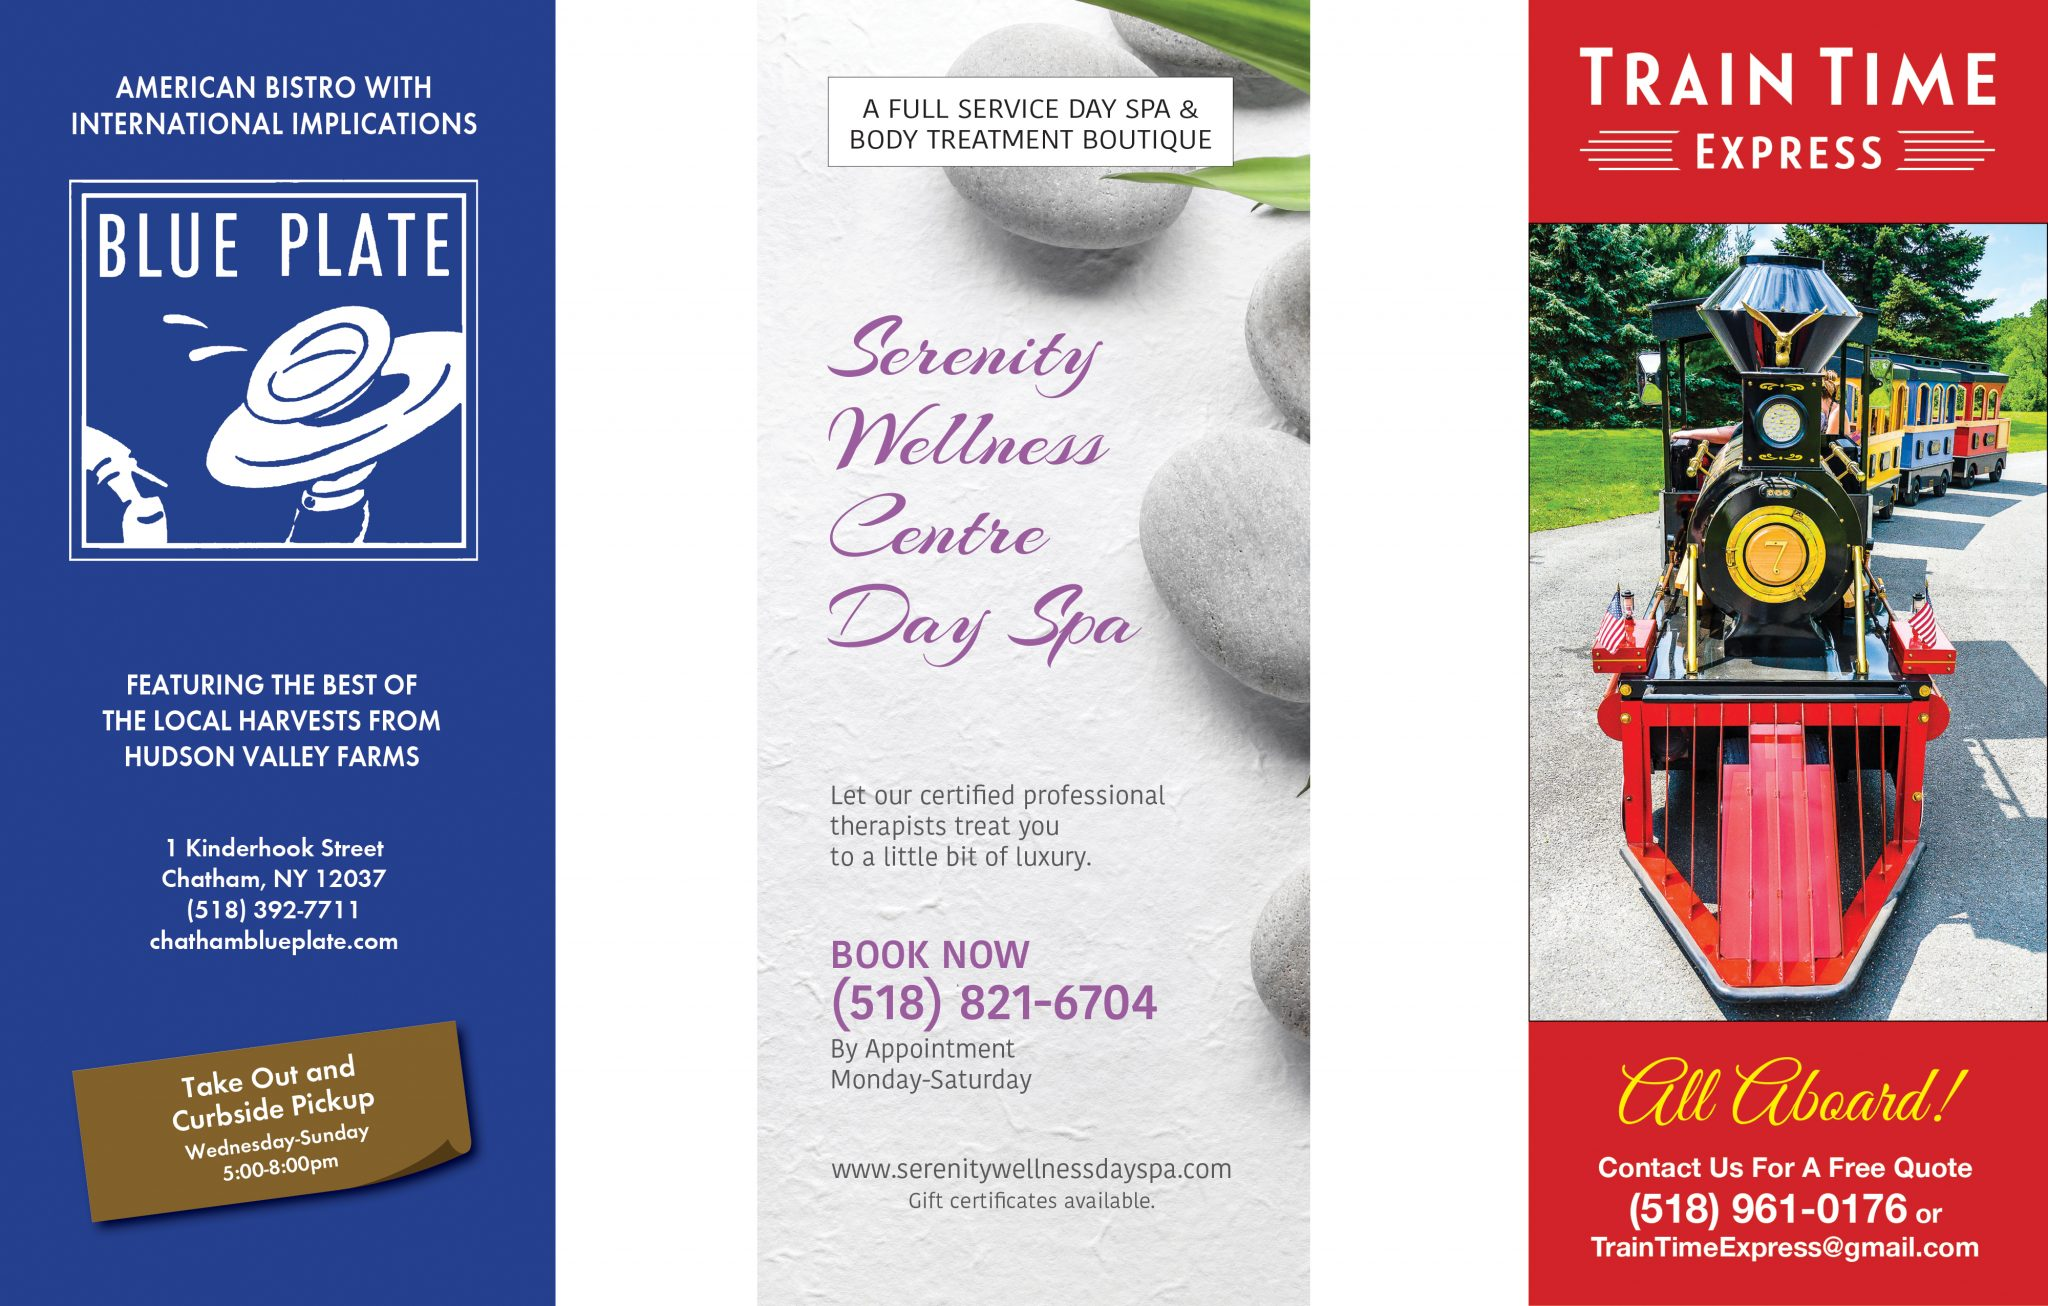 Blue Plate, Serenity Wellness Centre Day Spa and Train Time Express brochure covers